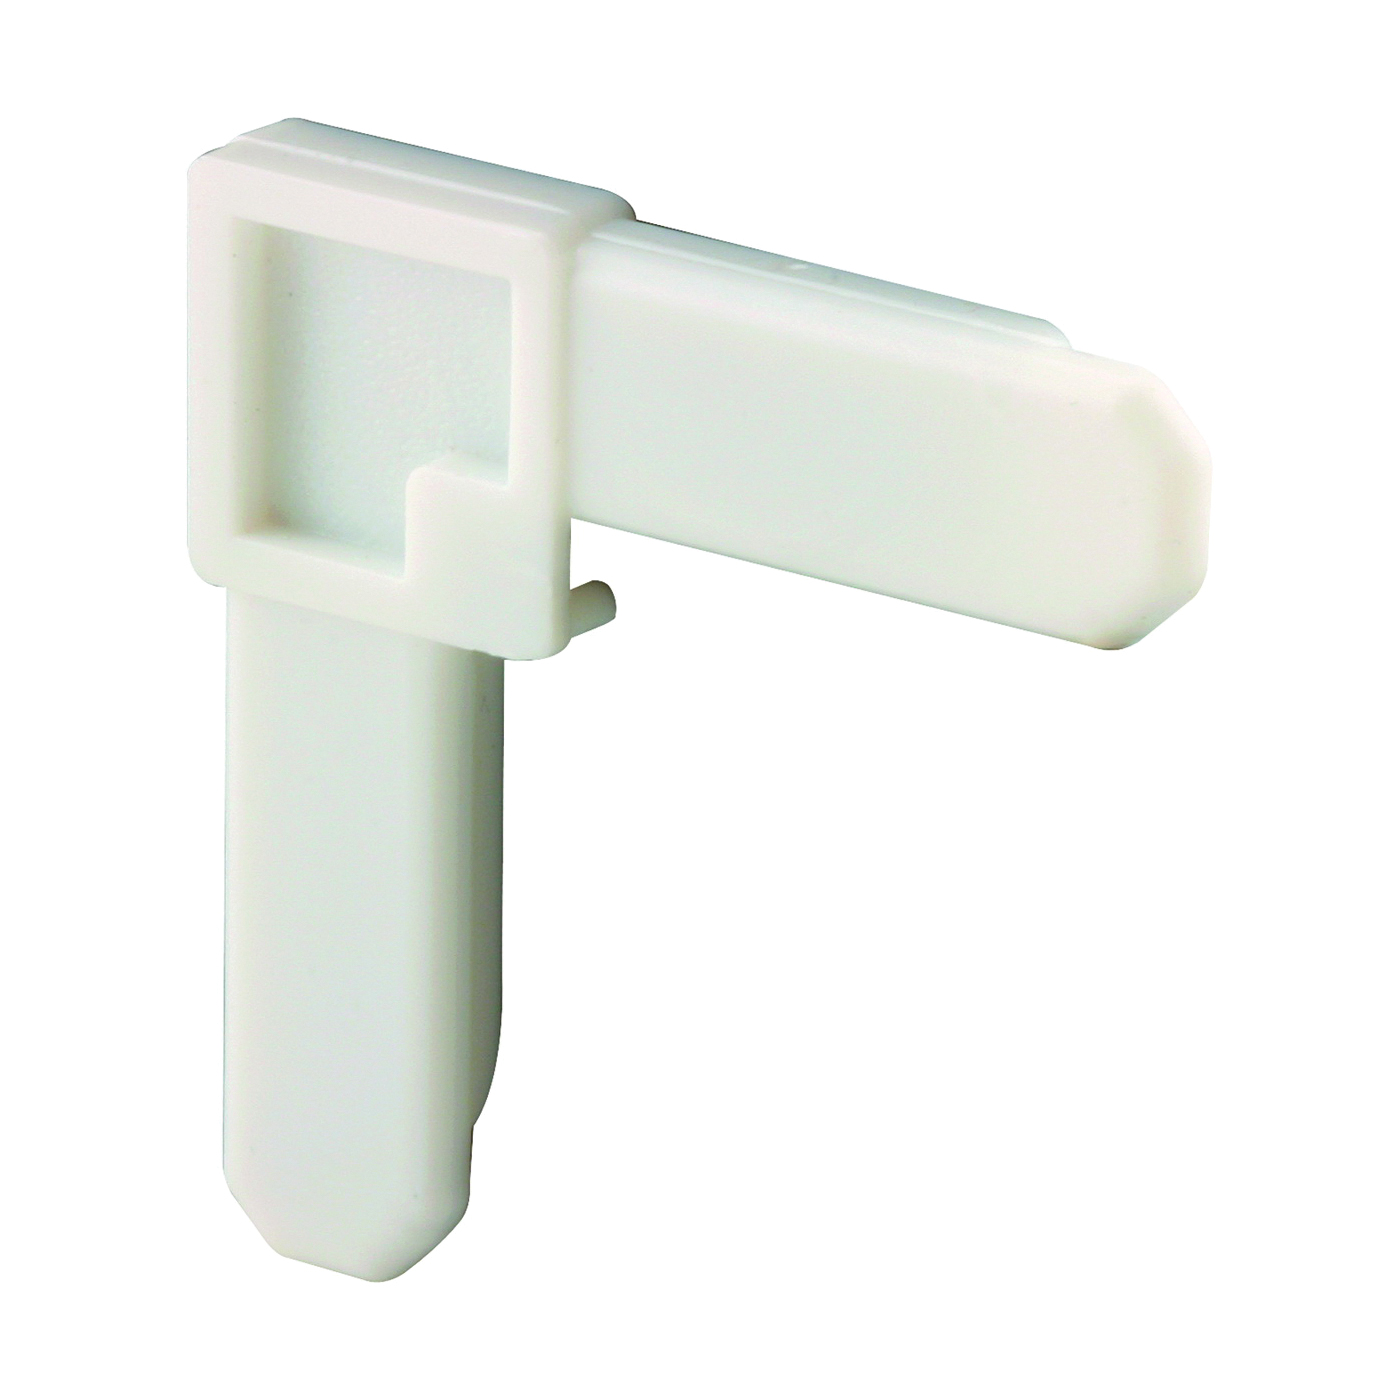 Picture of Make-2-Fit PL 7729 Screen Frame Corner, Square Cut, Plastic, White, 4, Carded